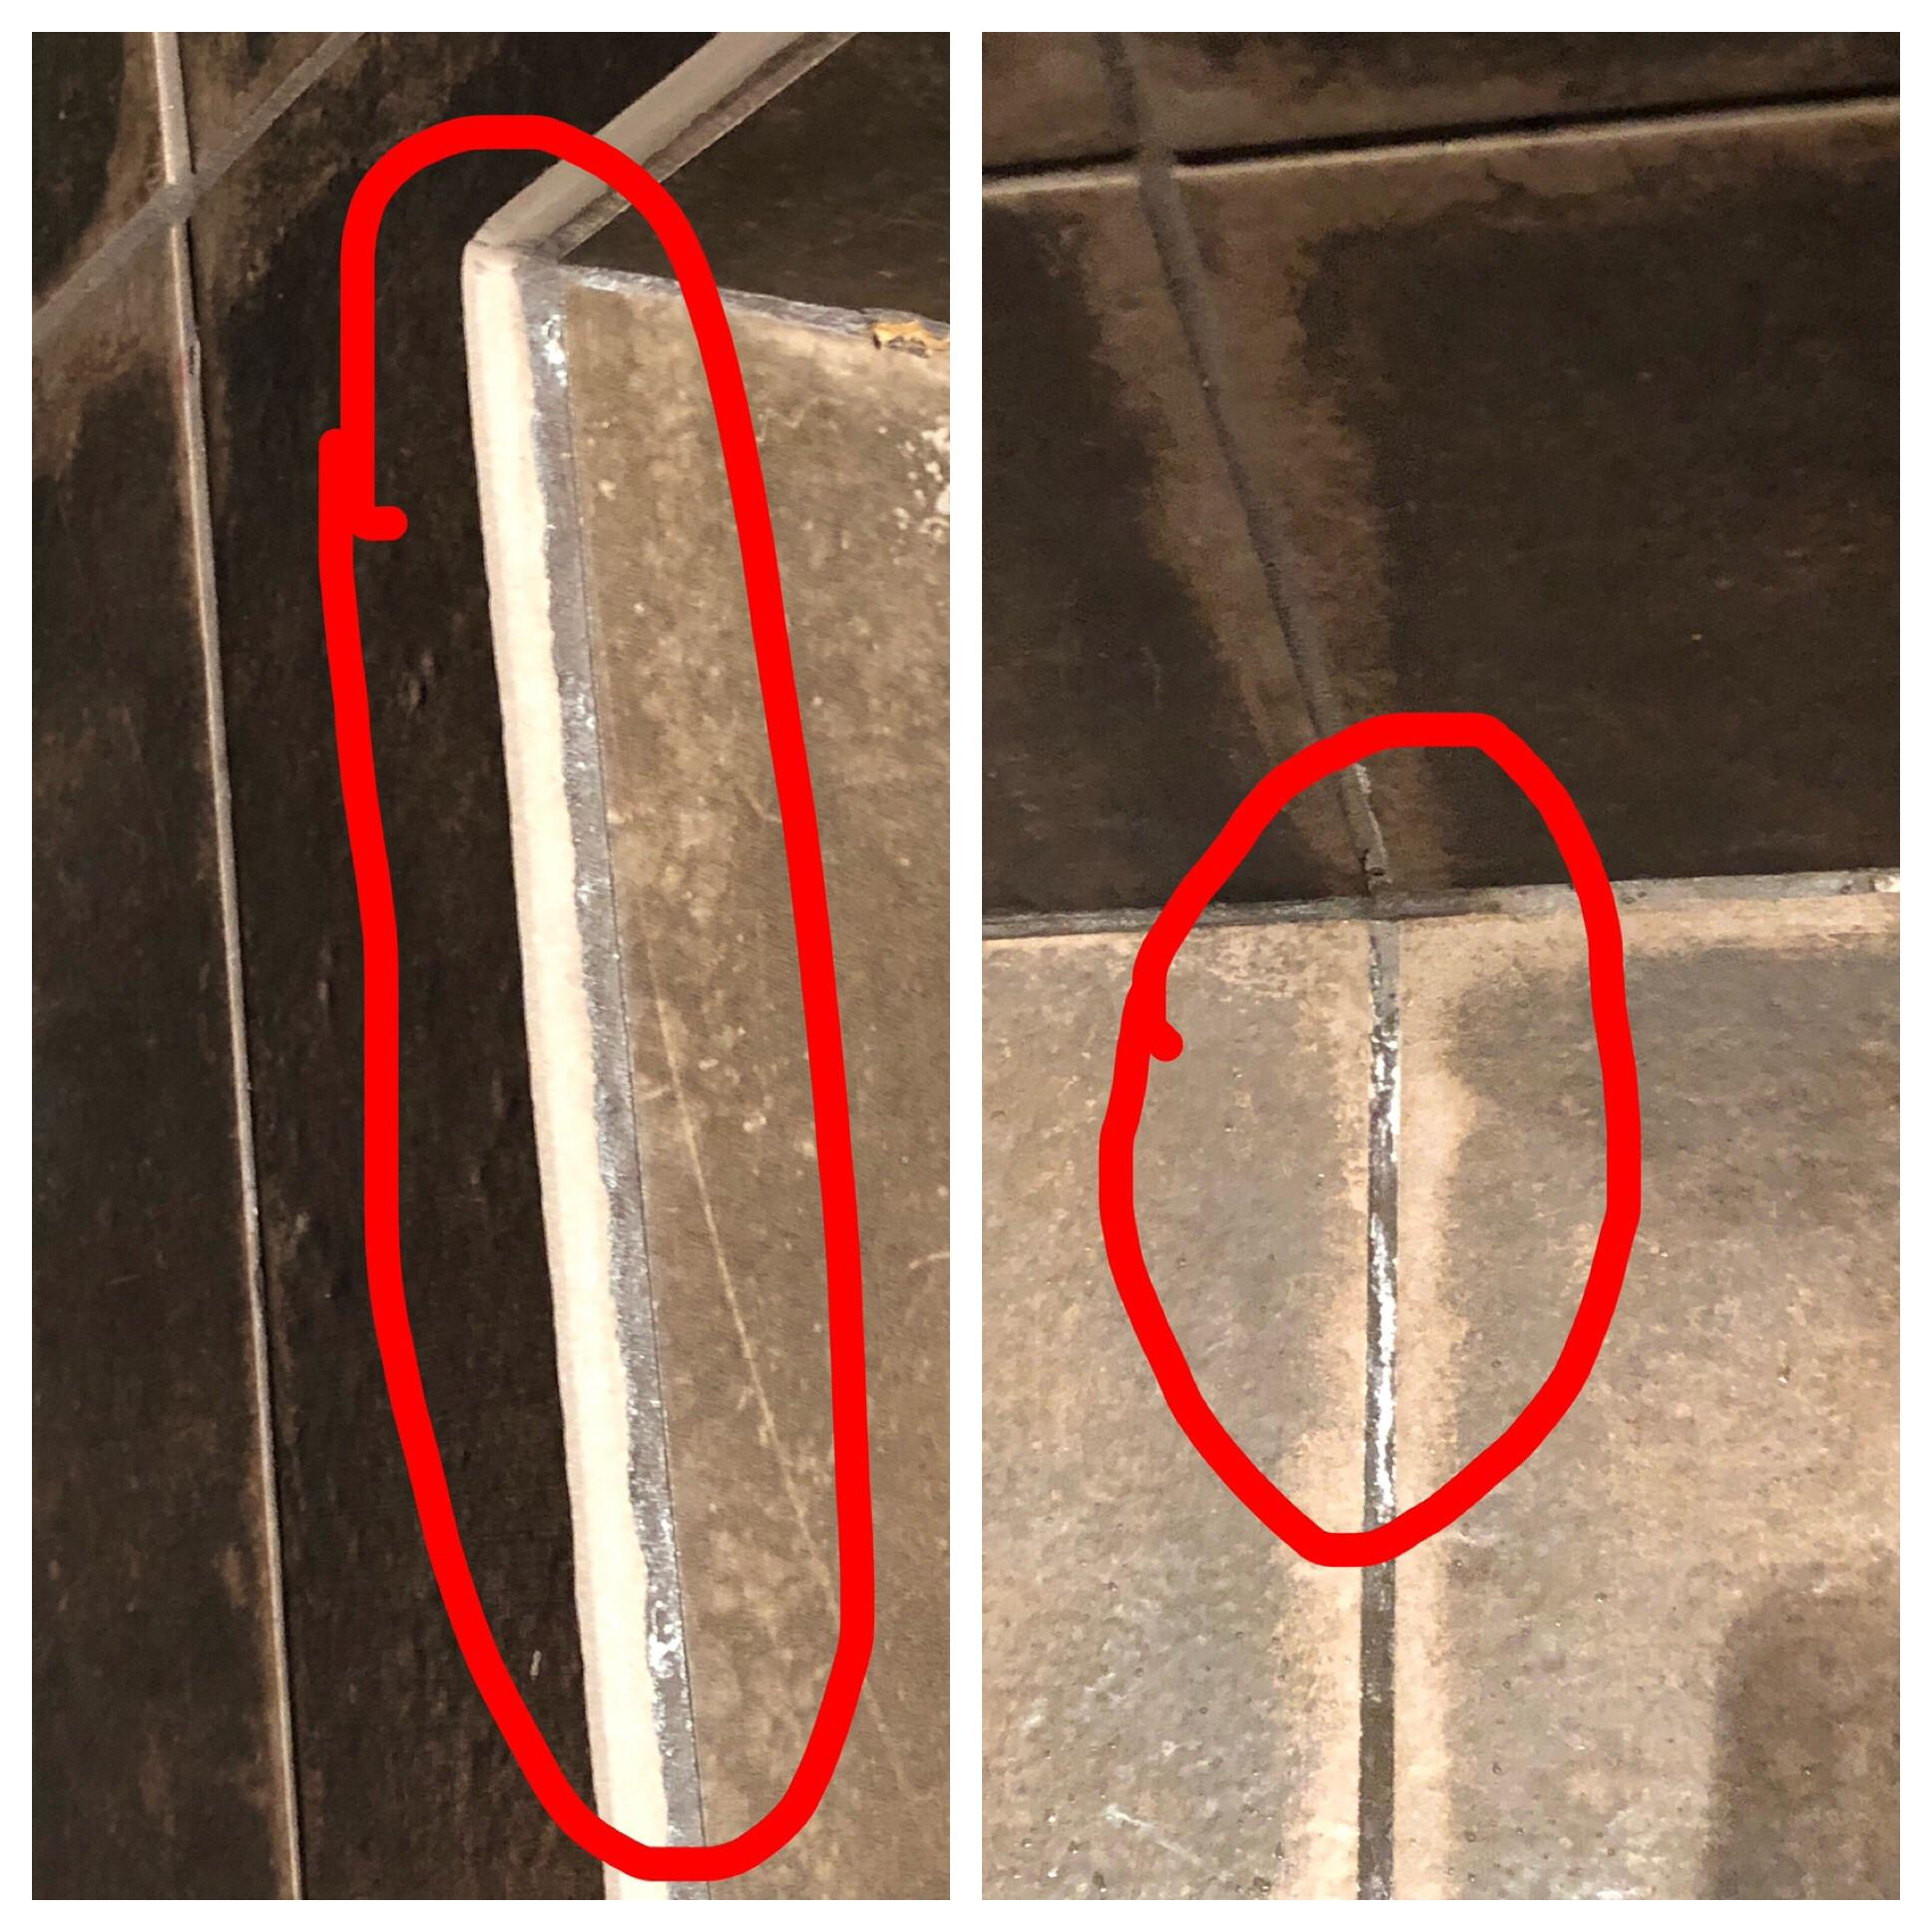 to clean soap scum off of tile grout